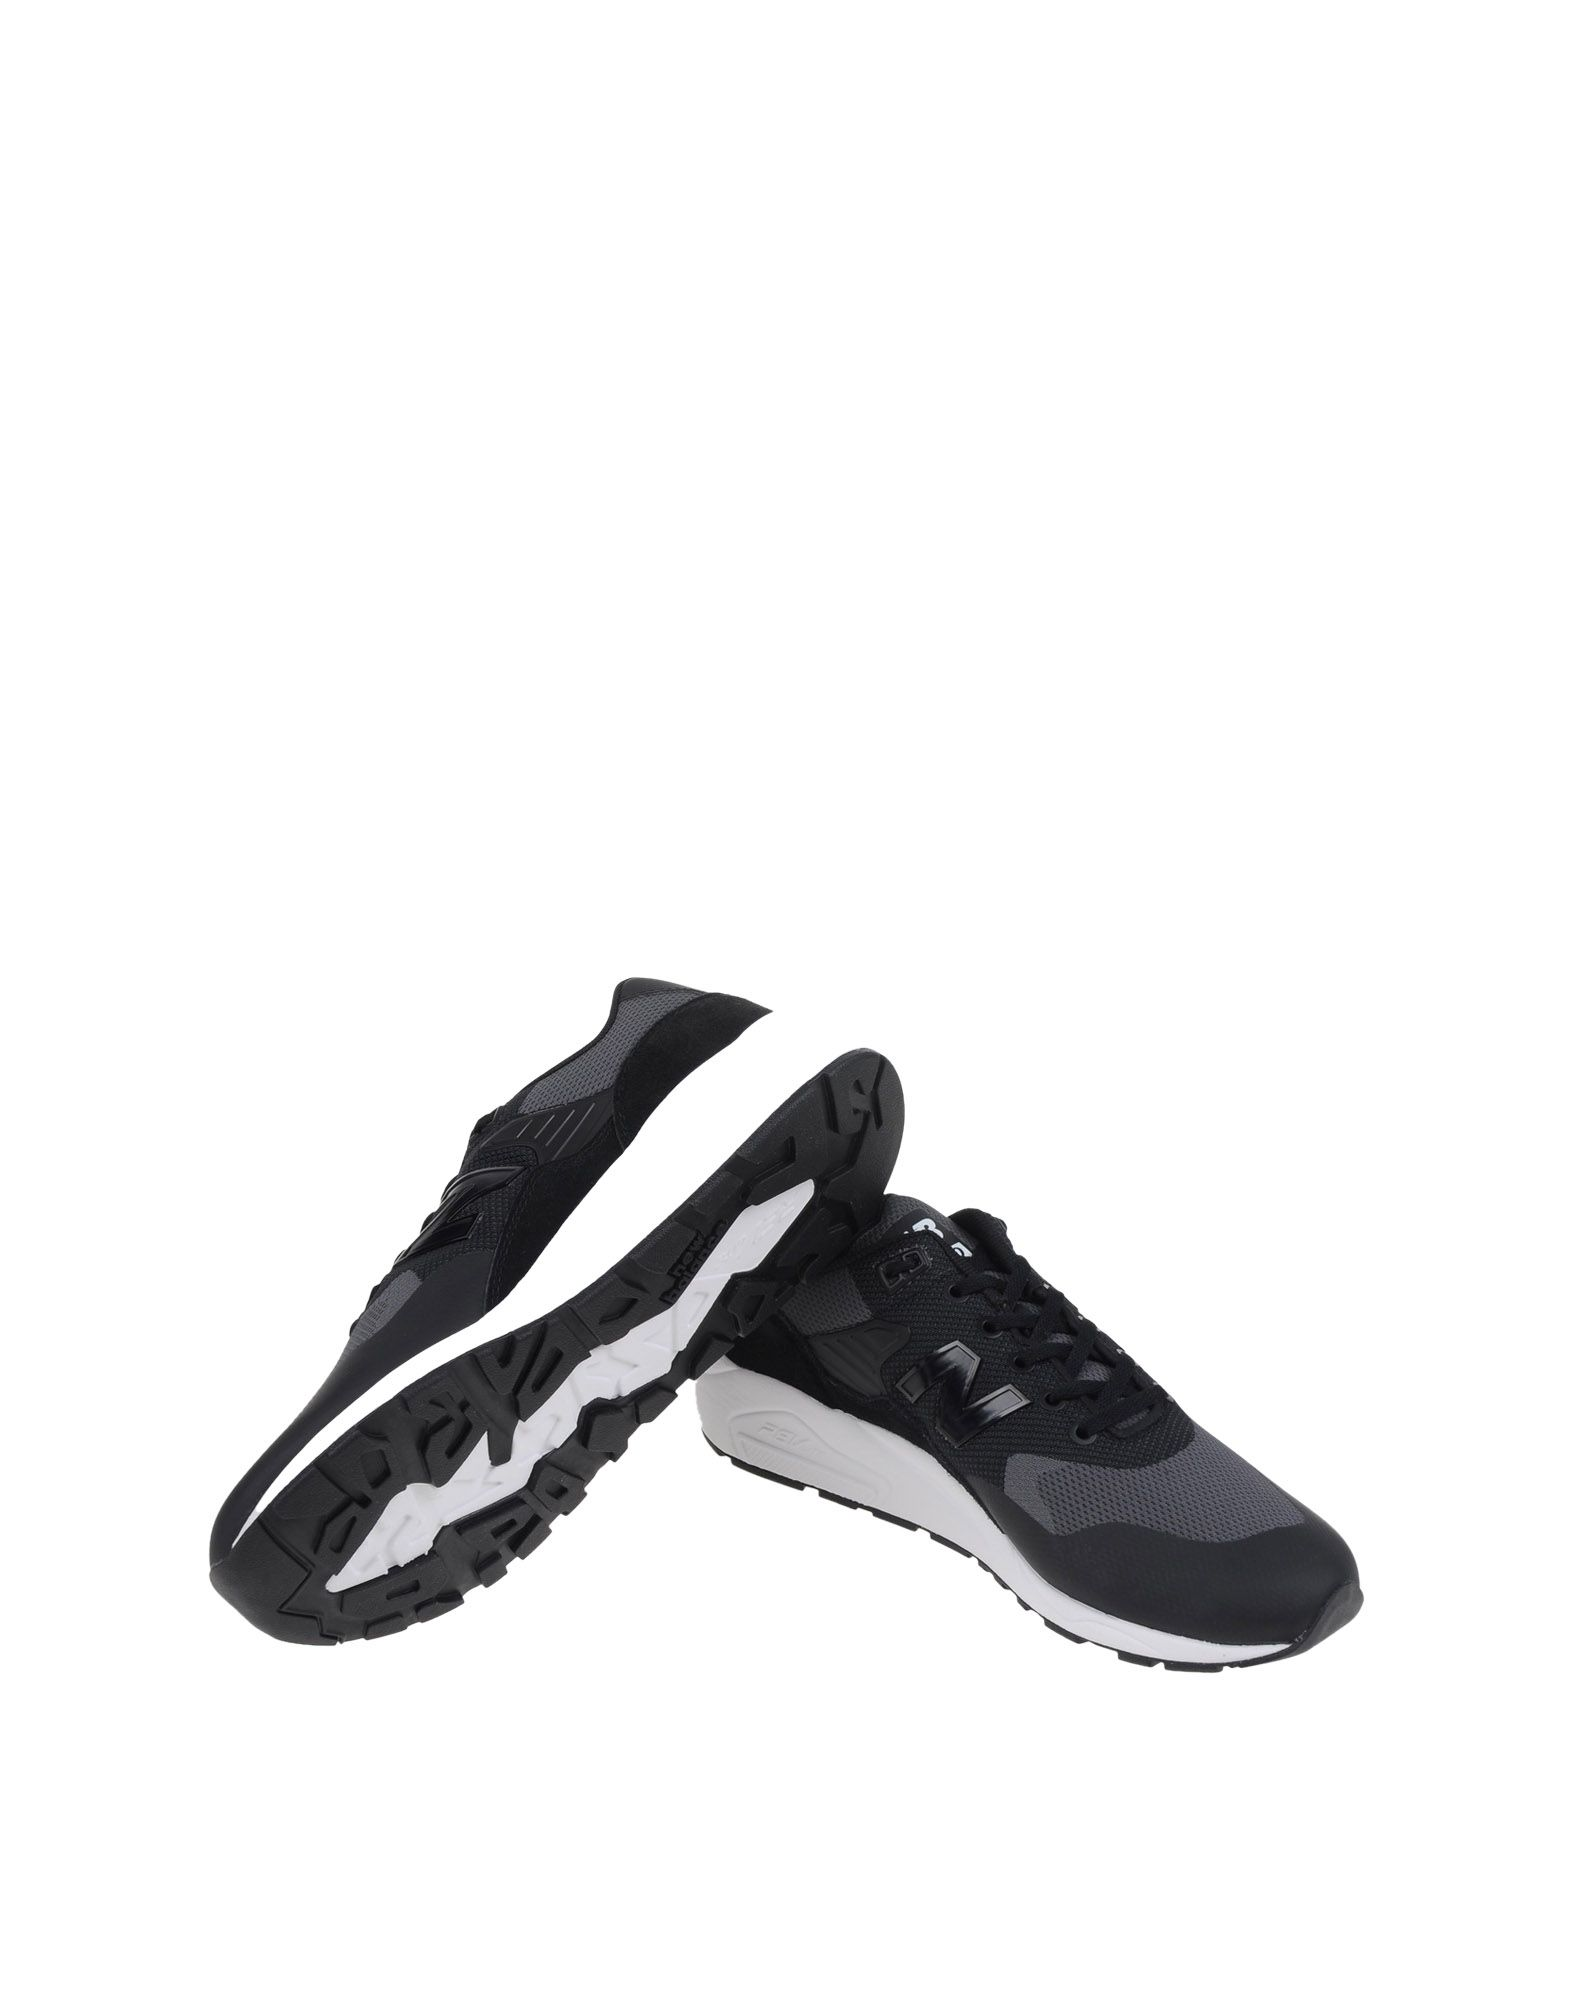 Sneakers New 580 Balance 580 New Techy Textile - Uomo - 11105823HB 7d1d6c